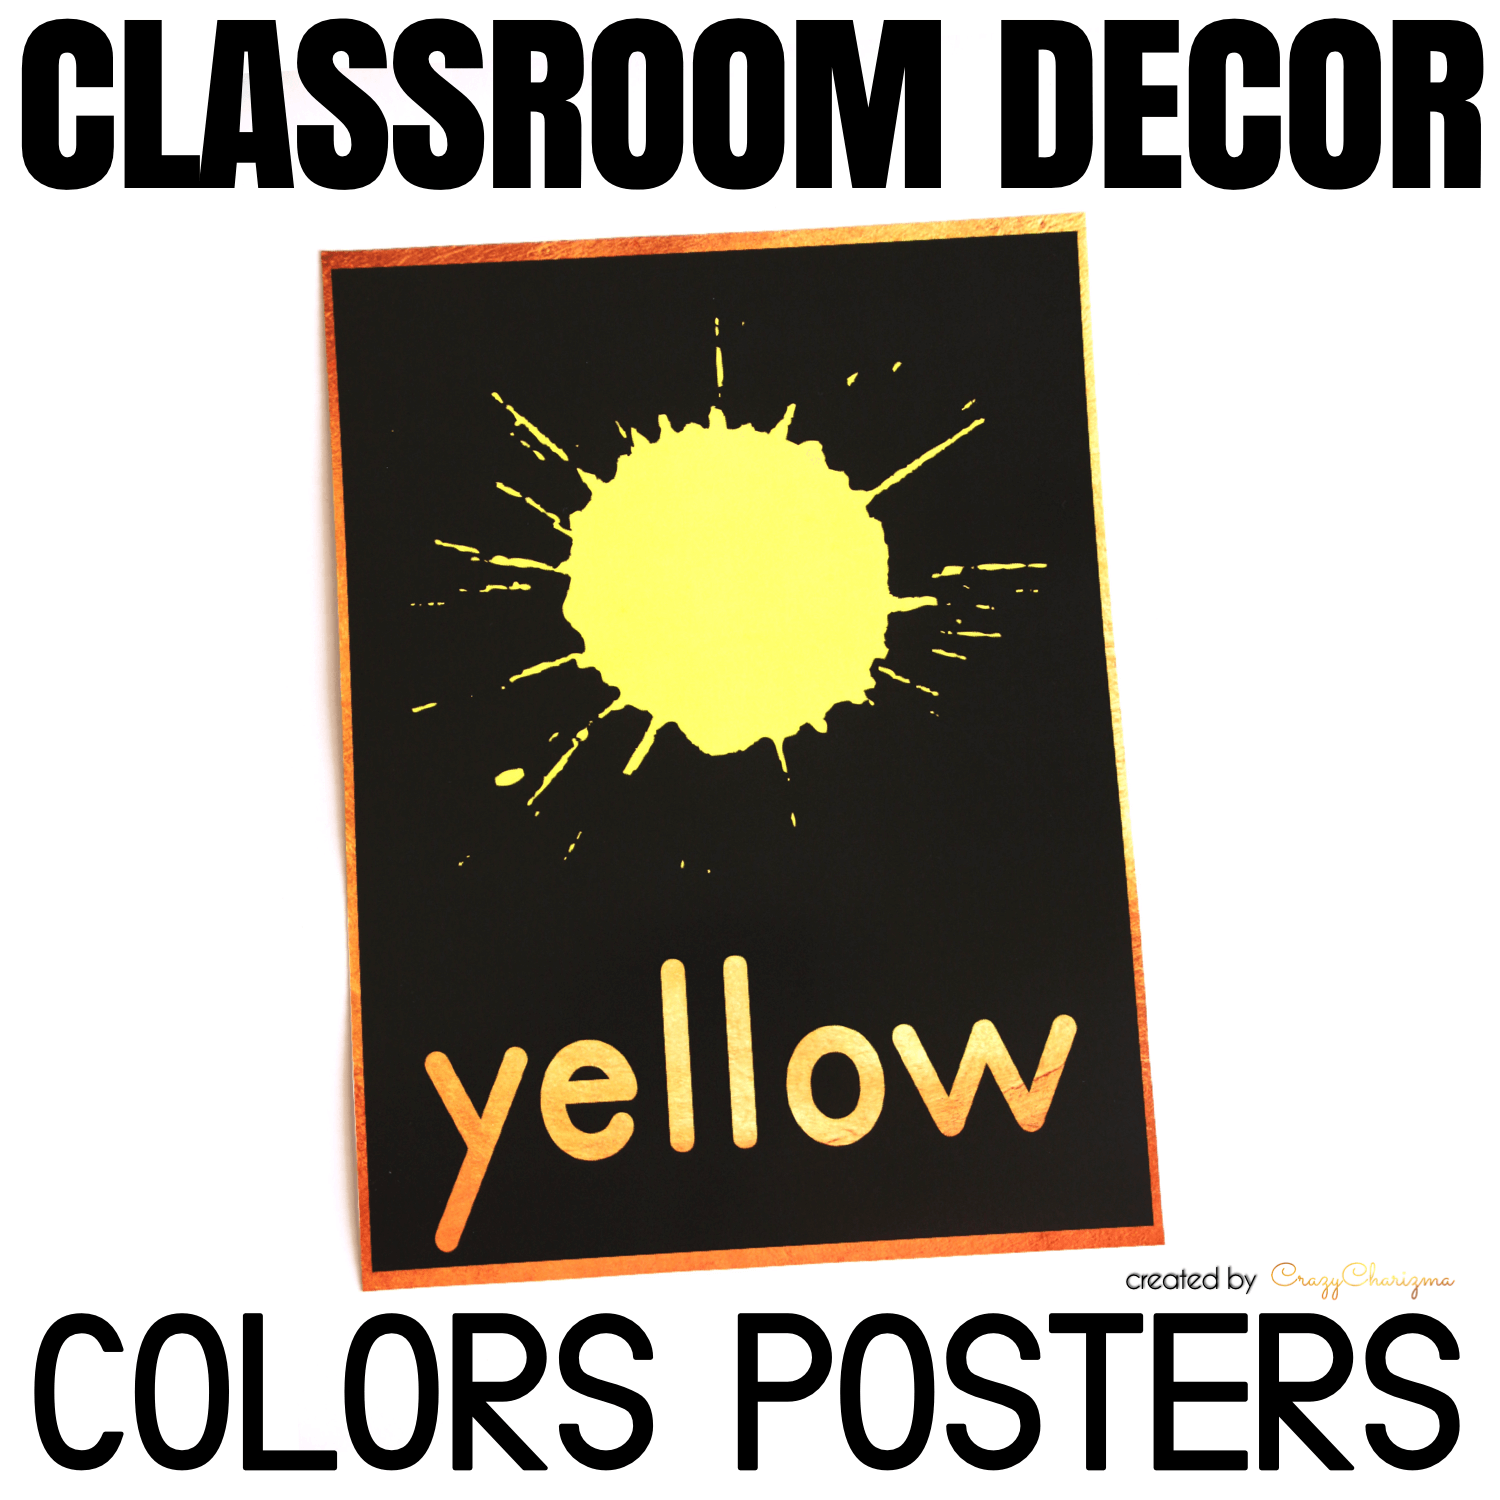 Decorate your classroom this year with this stylish BLACK and GOLD decor set. Find inside vibrant and bright Colors Posters.